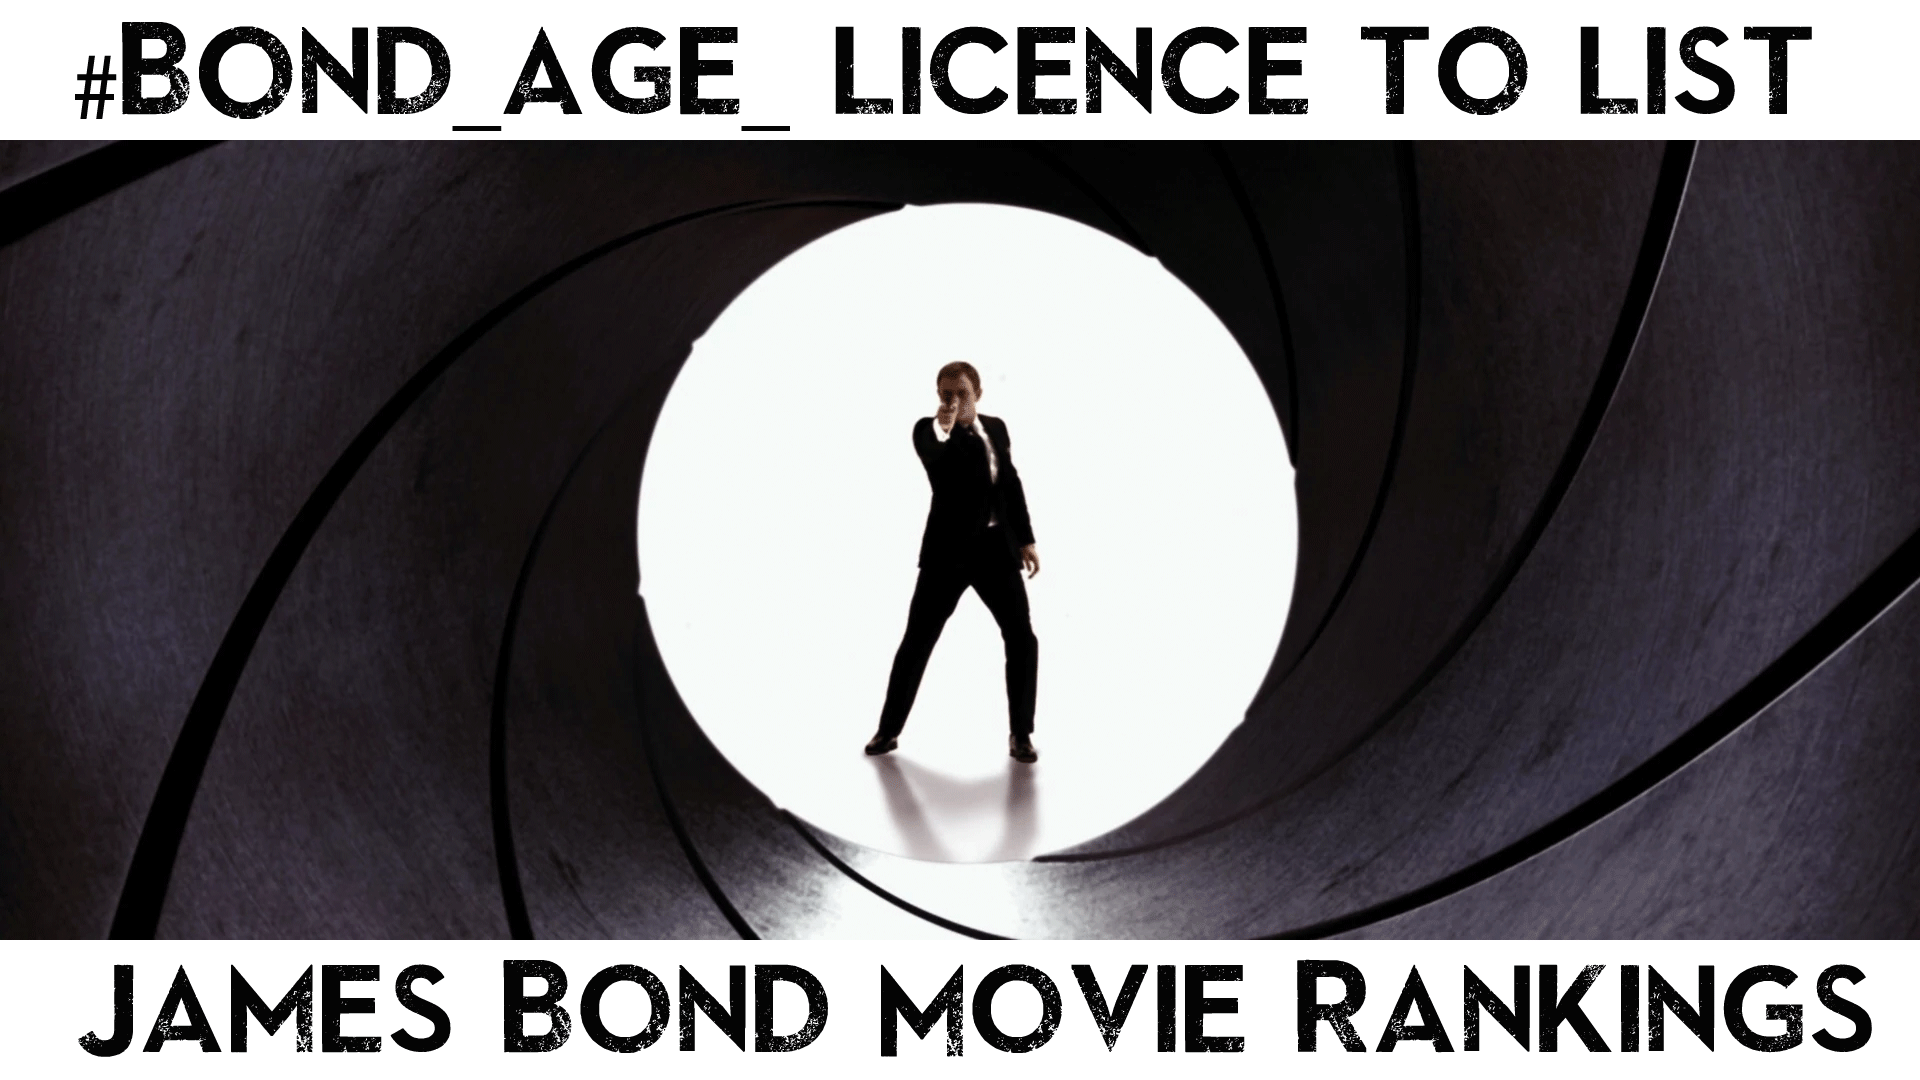 james bond movie rankings